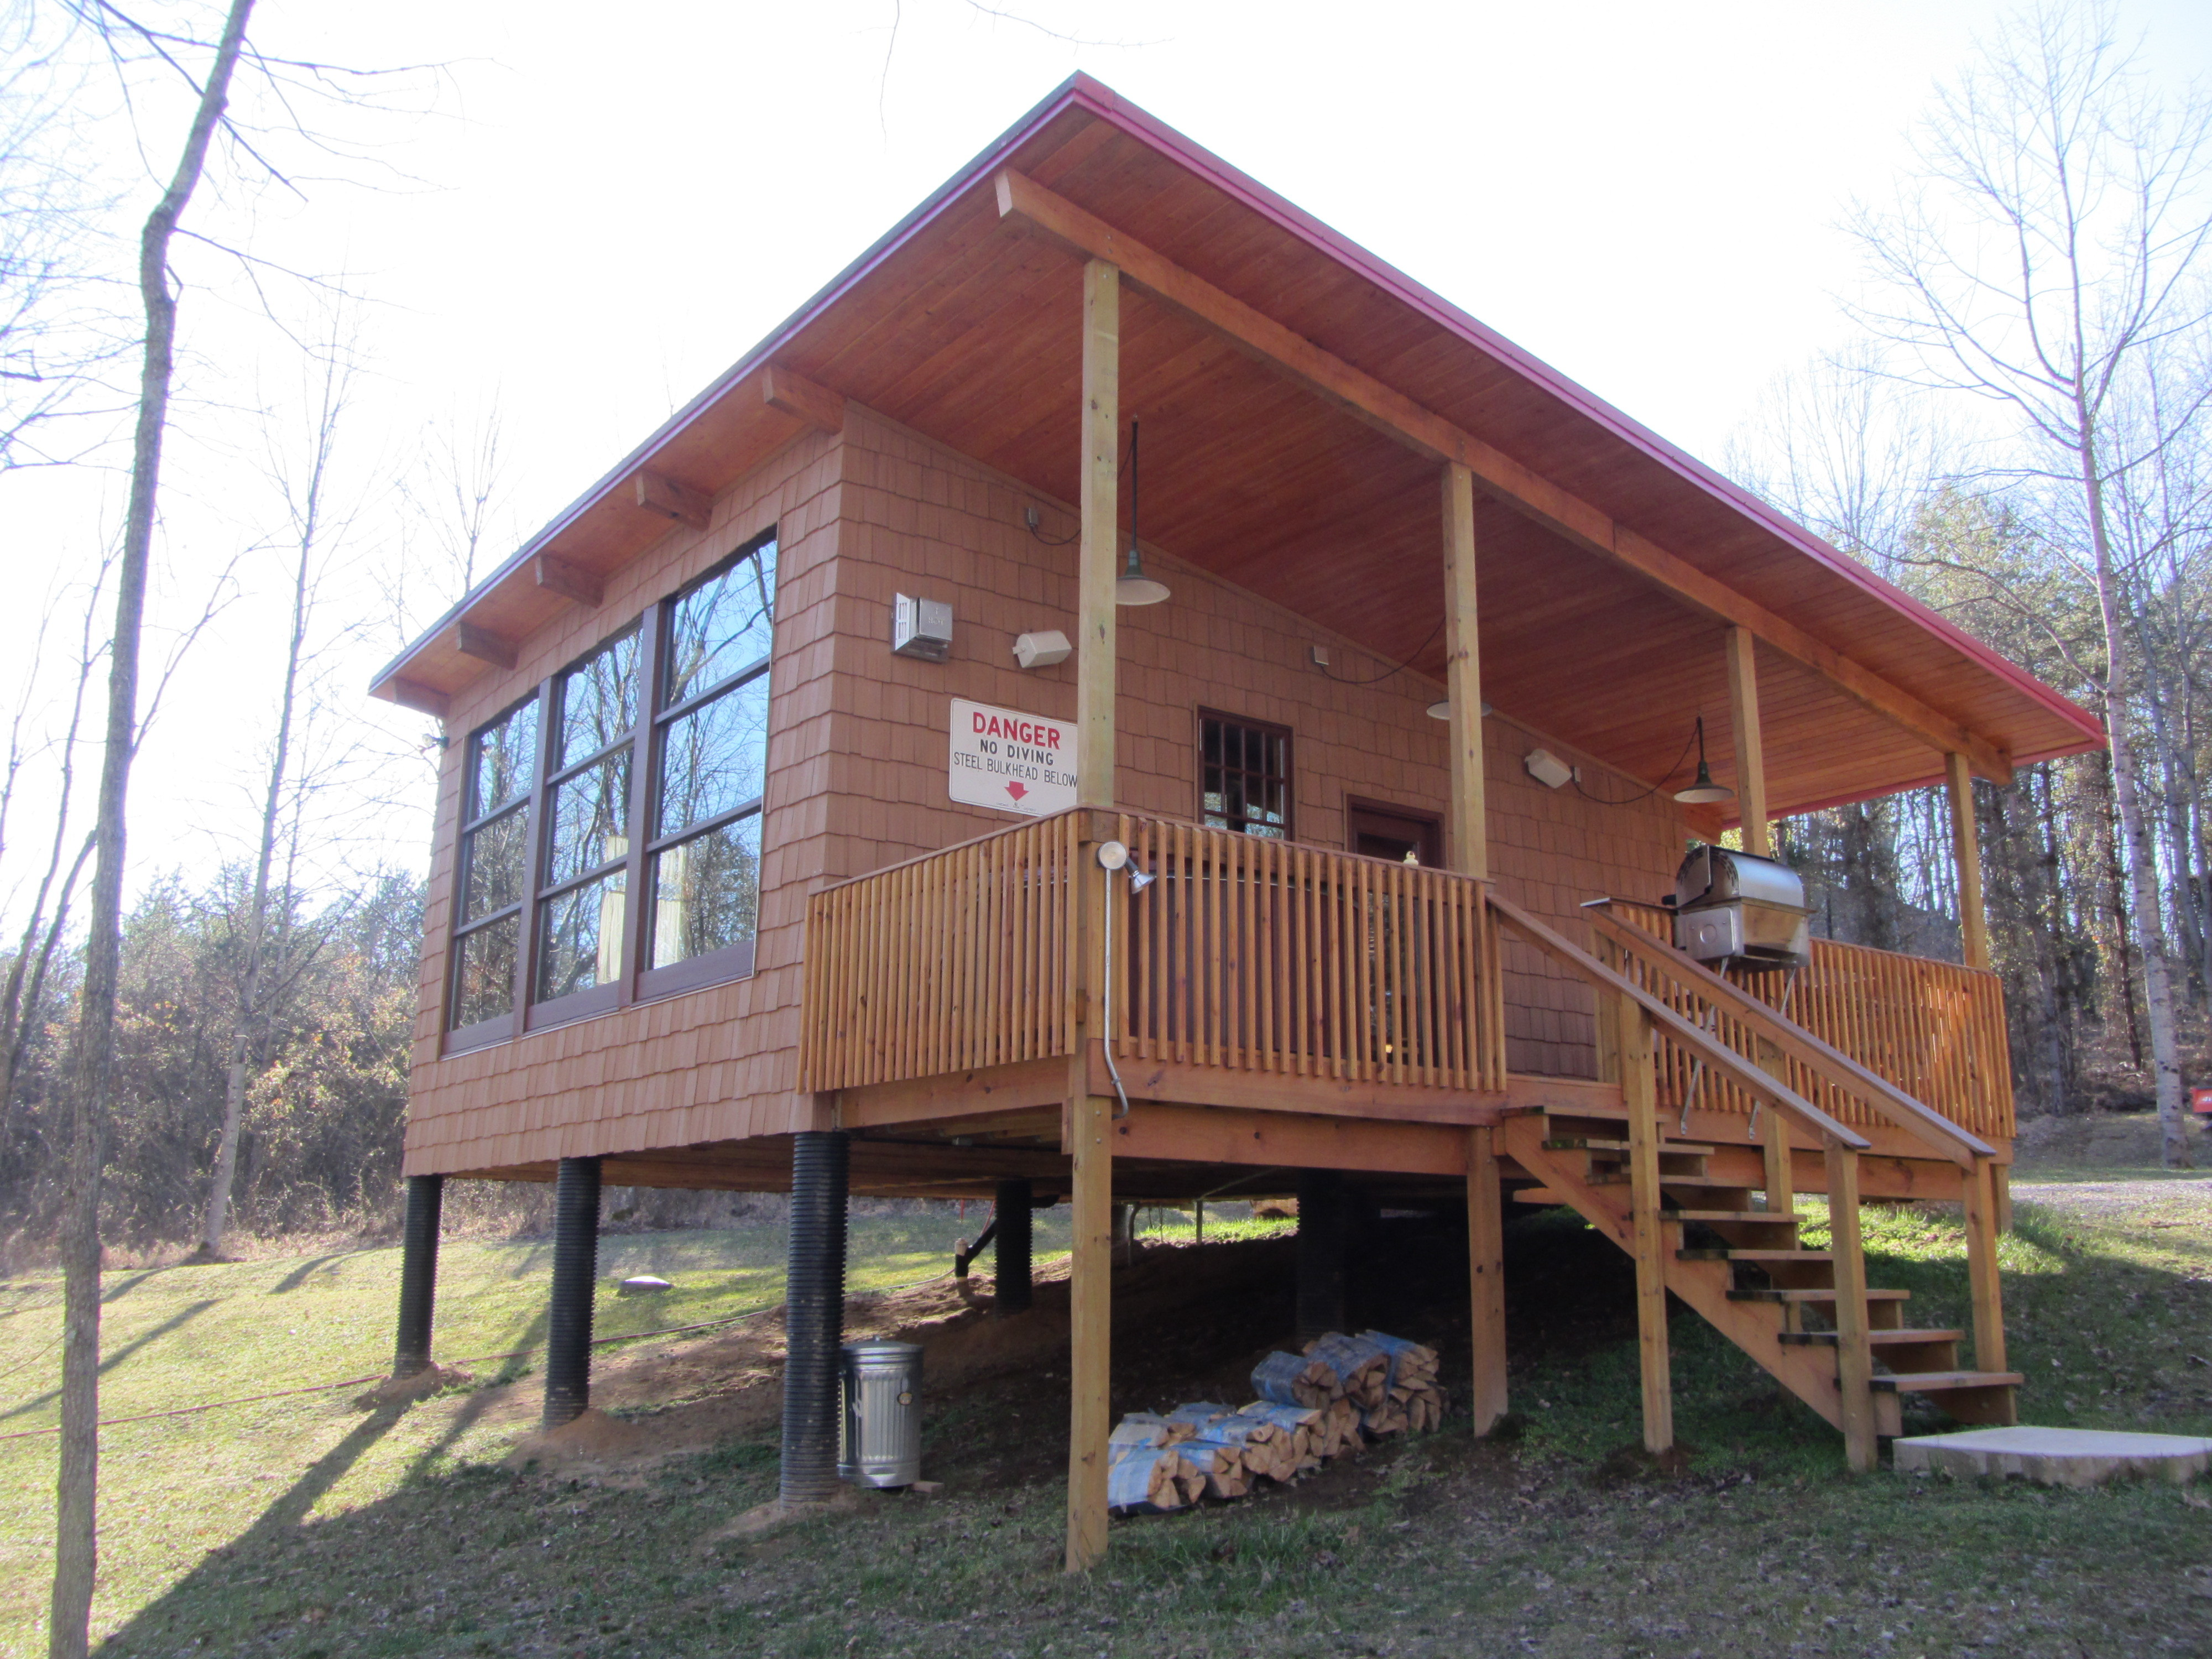 finchhouse outside cabins house availability hocking in rentals of ohio nest check hills finches cabin